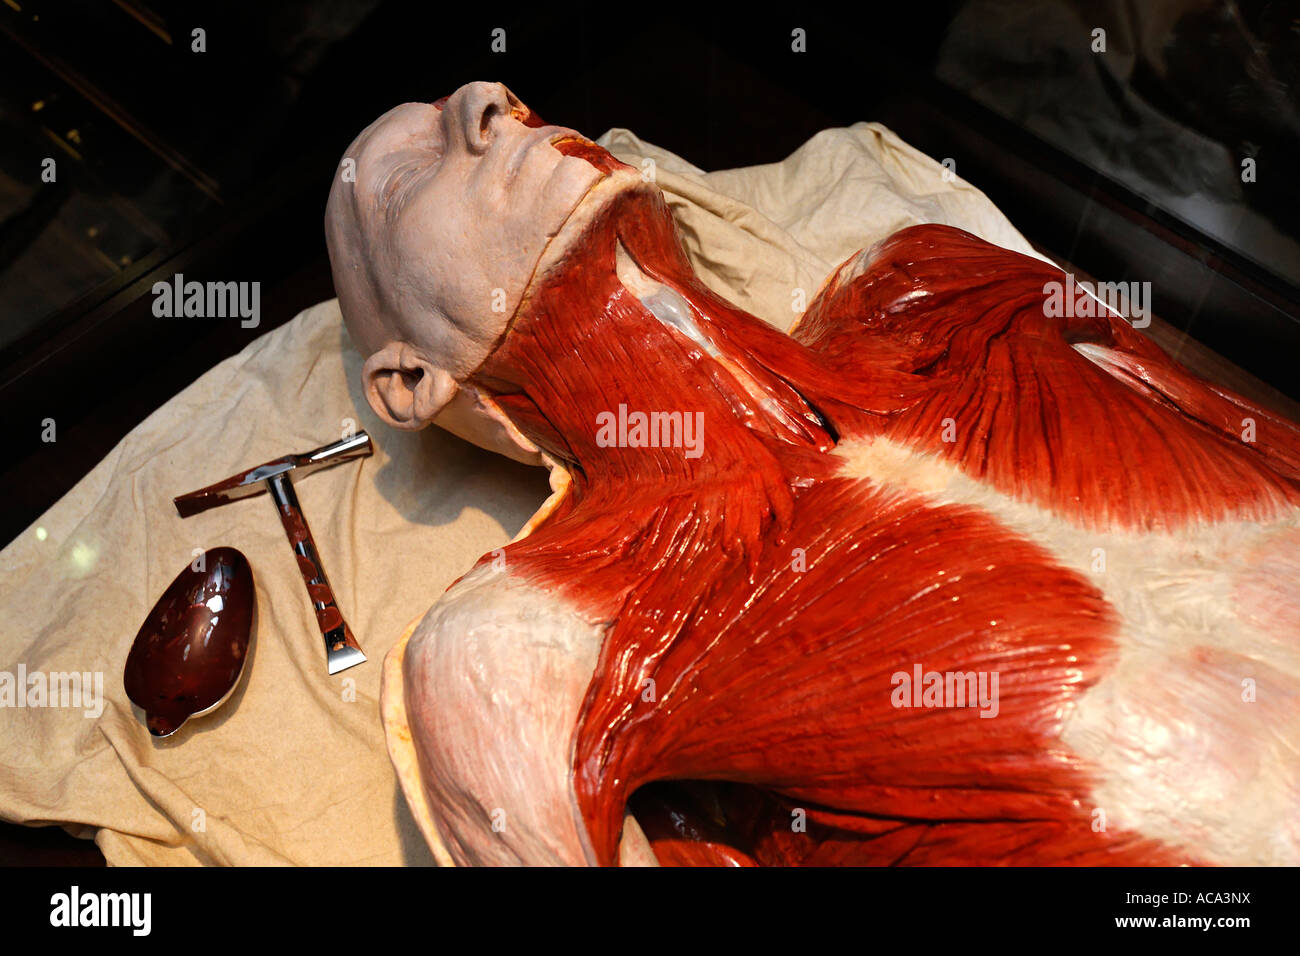 anatomical model of a human body with visible muscles, german, Muscles